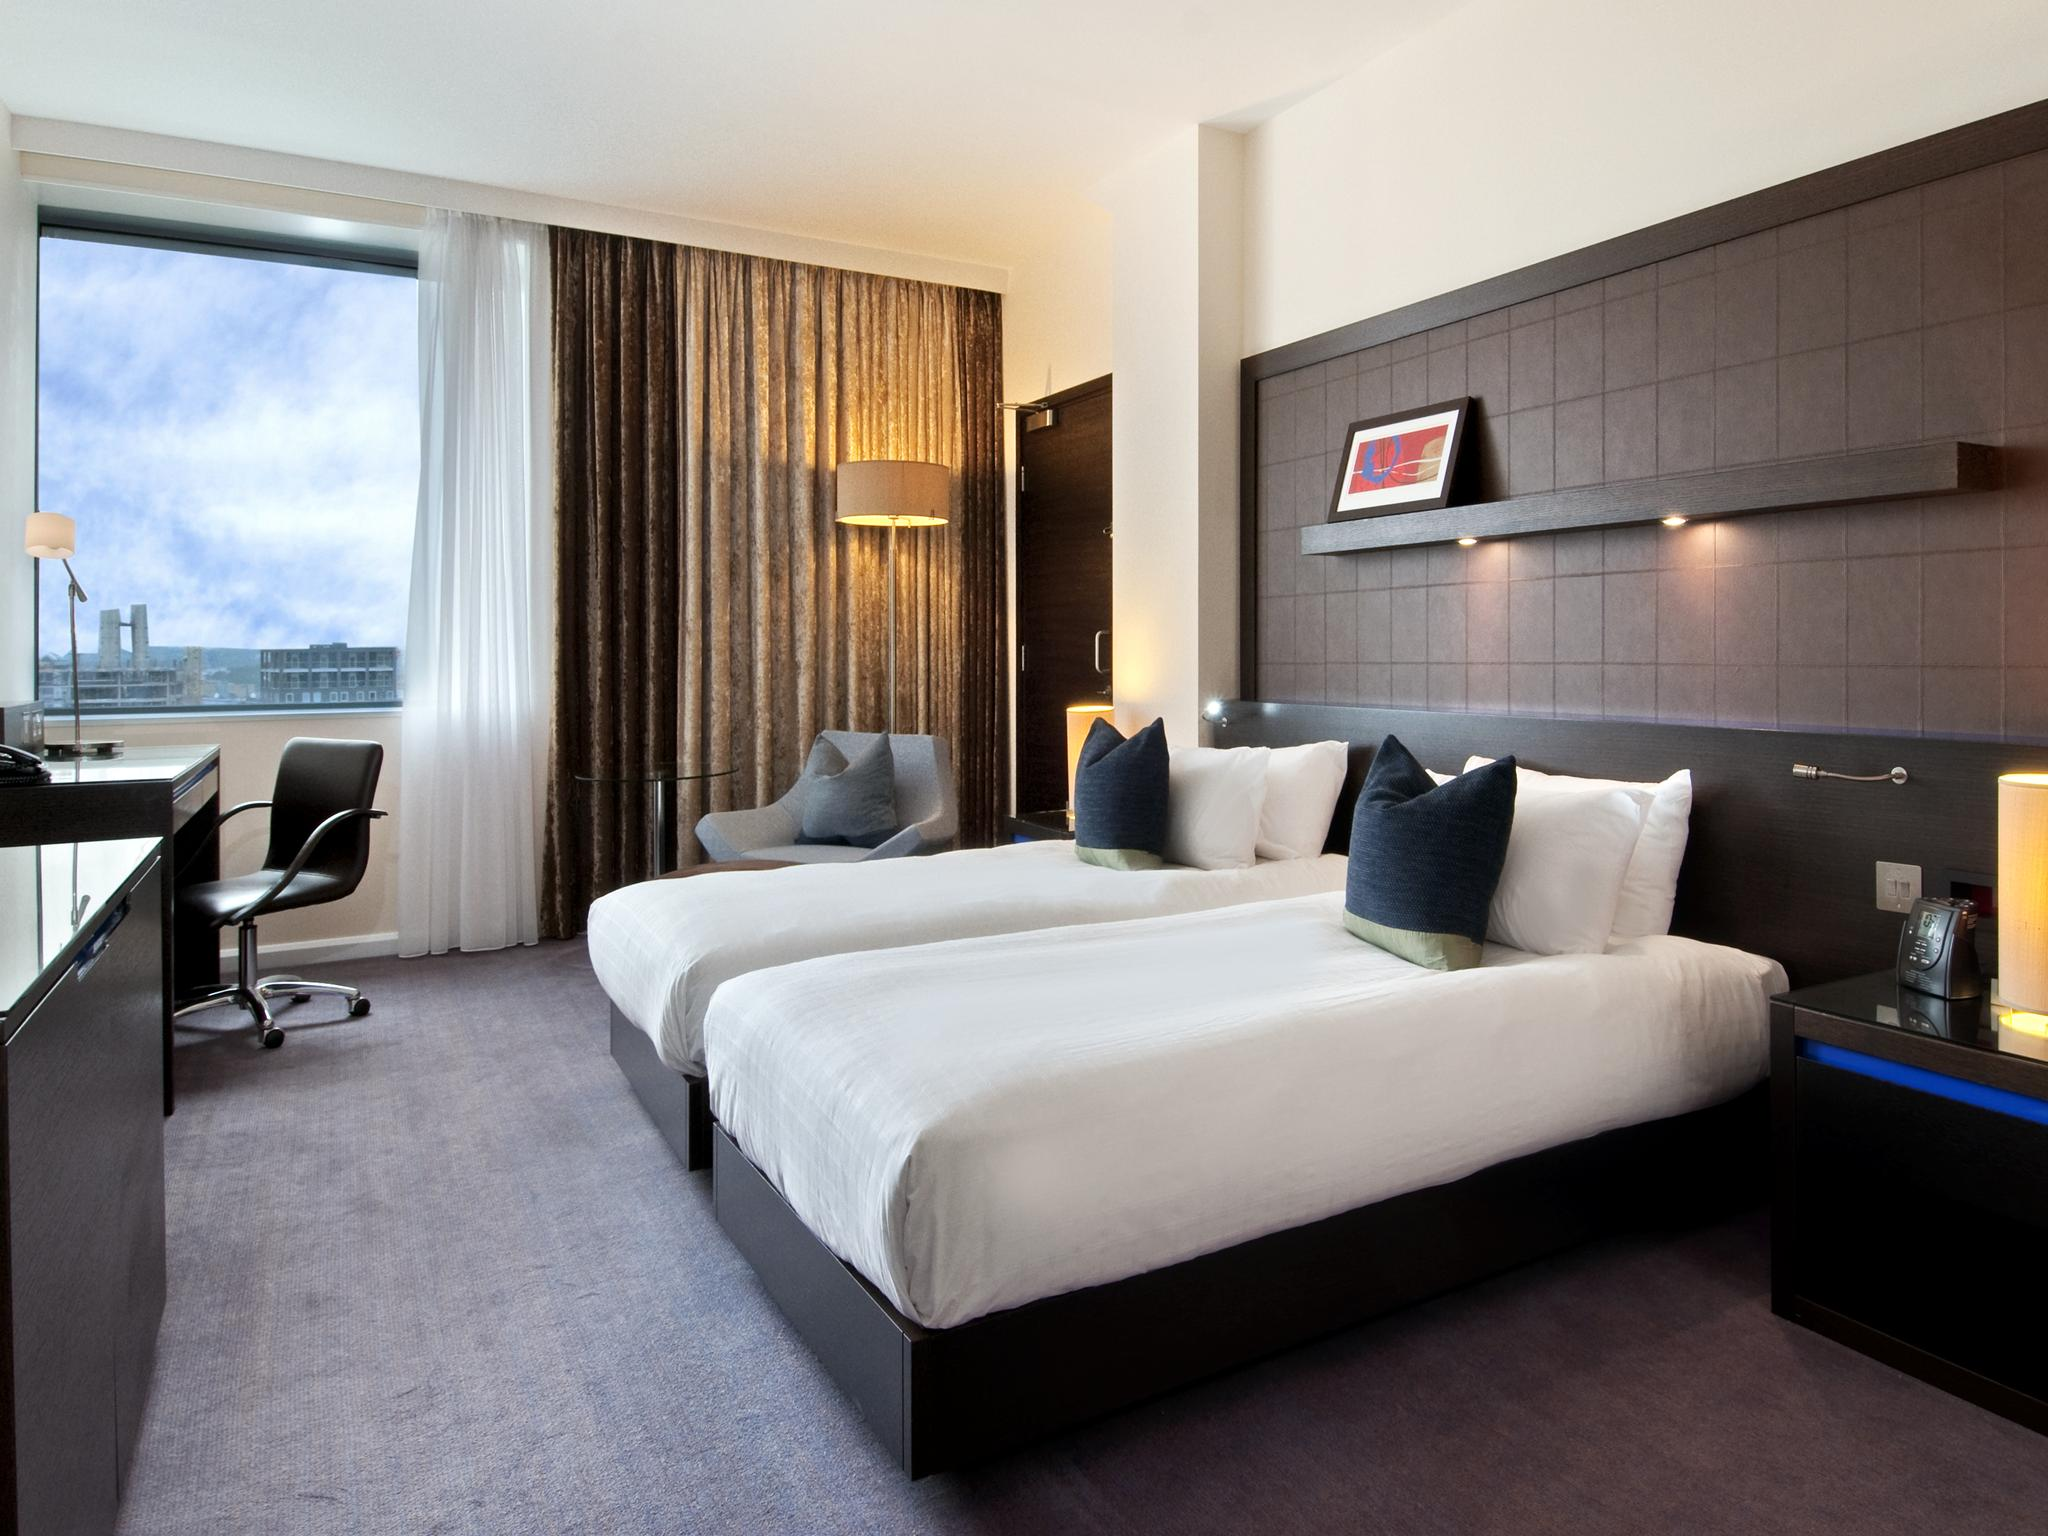 H tels londres hilton london canary wharf for Hotel cube londres